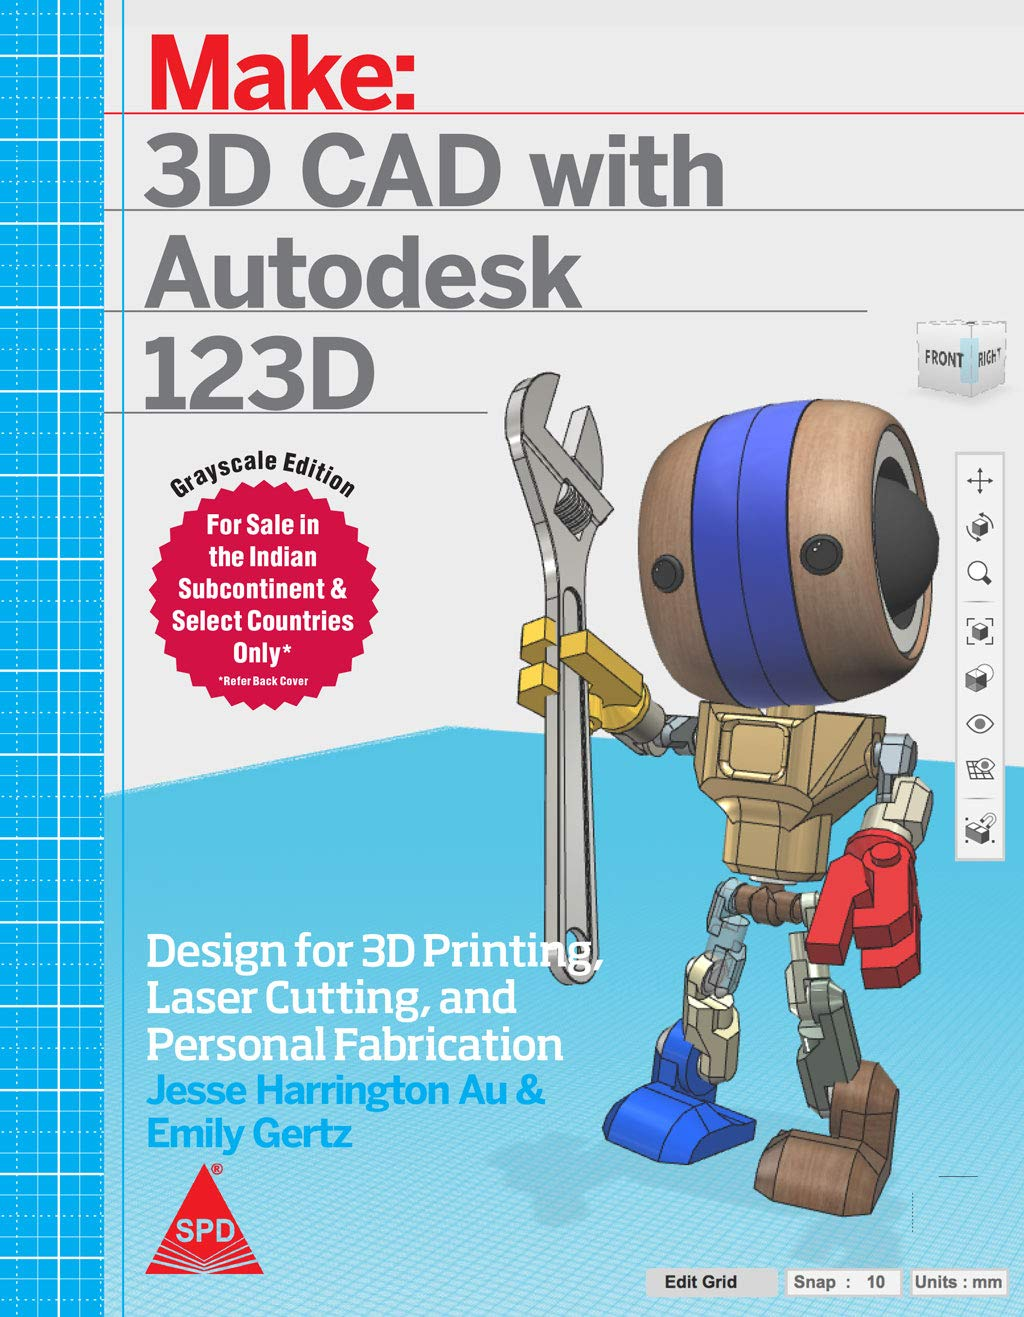 Make: 3D CAD with Autodesk 123D – Designing for 3D Printing, Laser Cutting, and Personal Fabrication